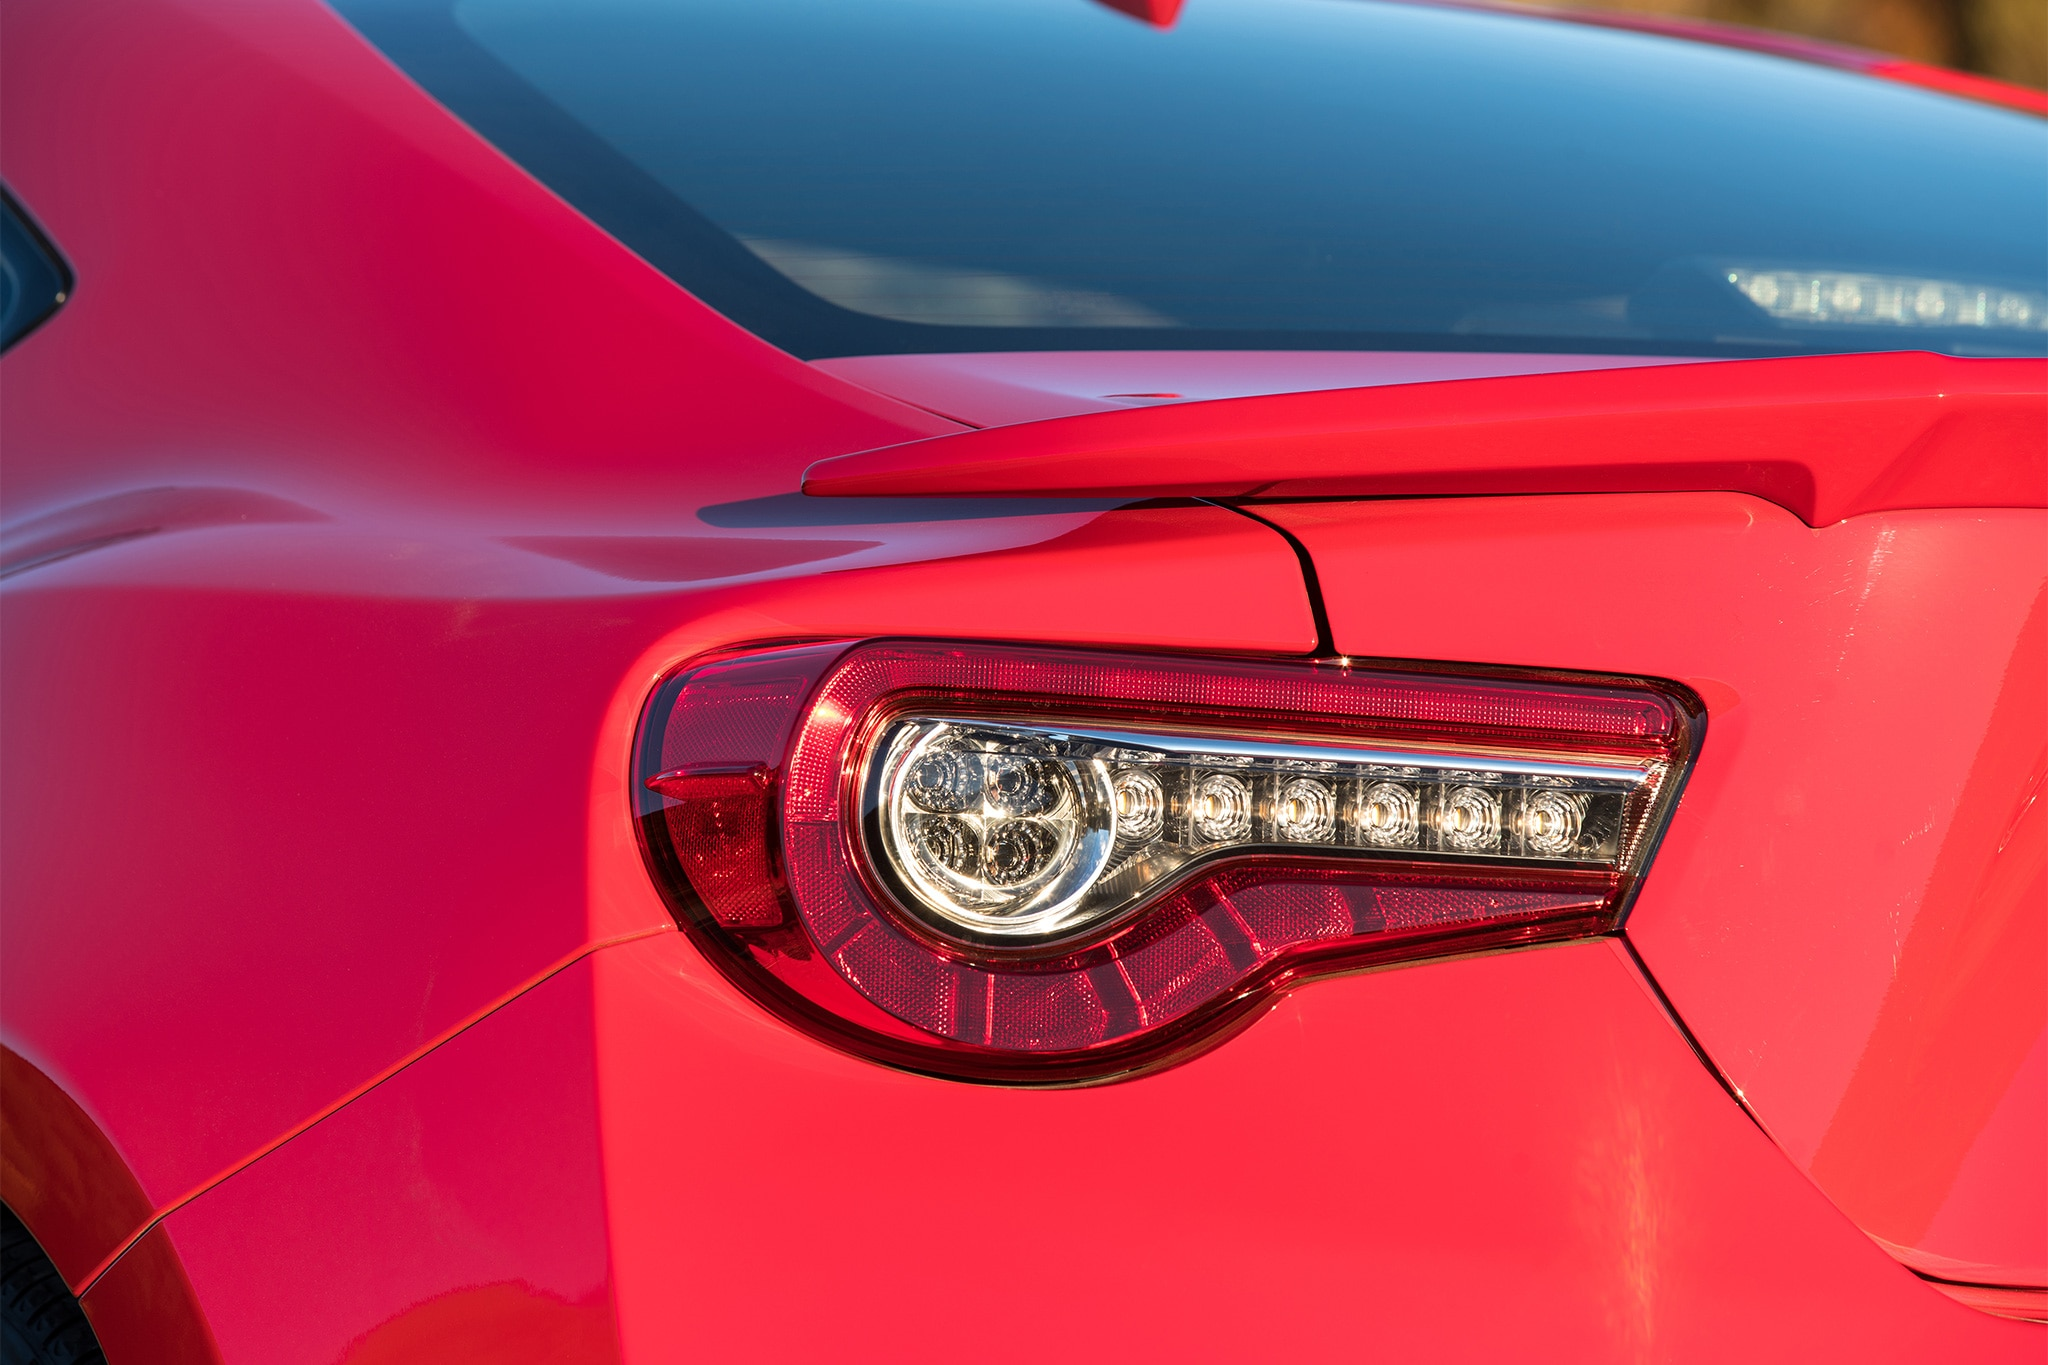 2017 Toyota 86 tail lamp